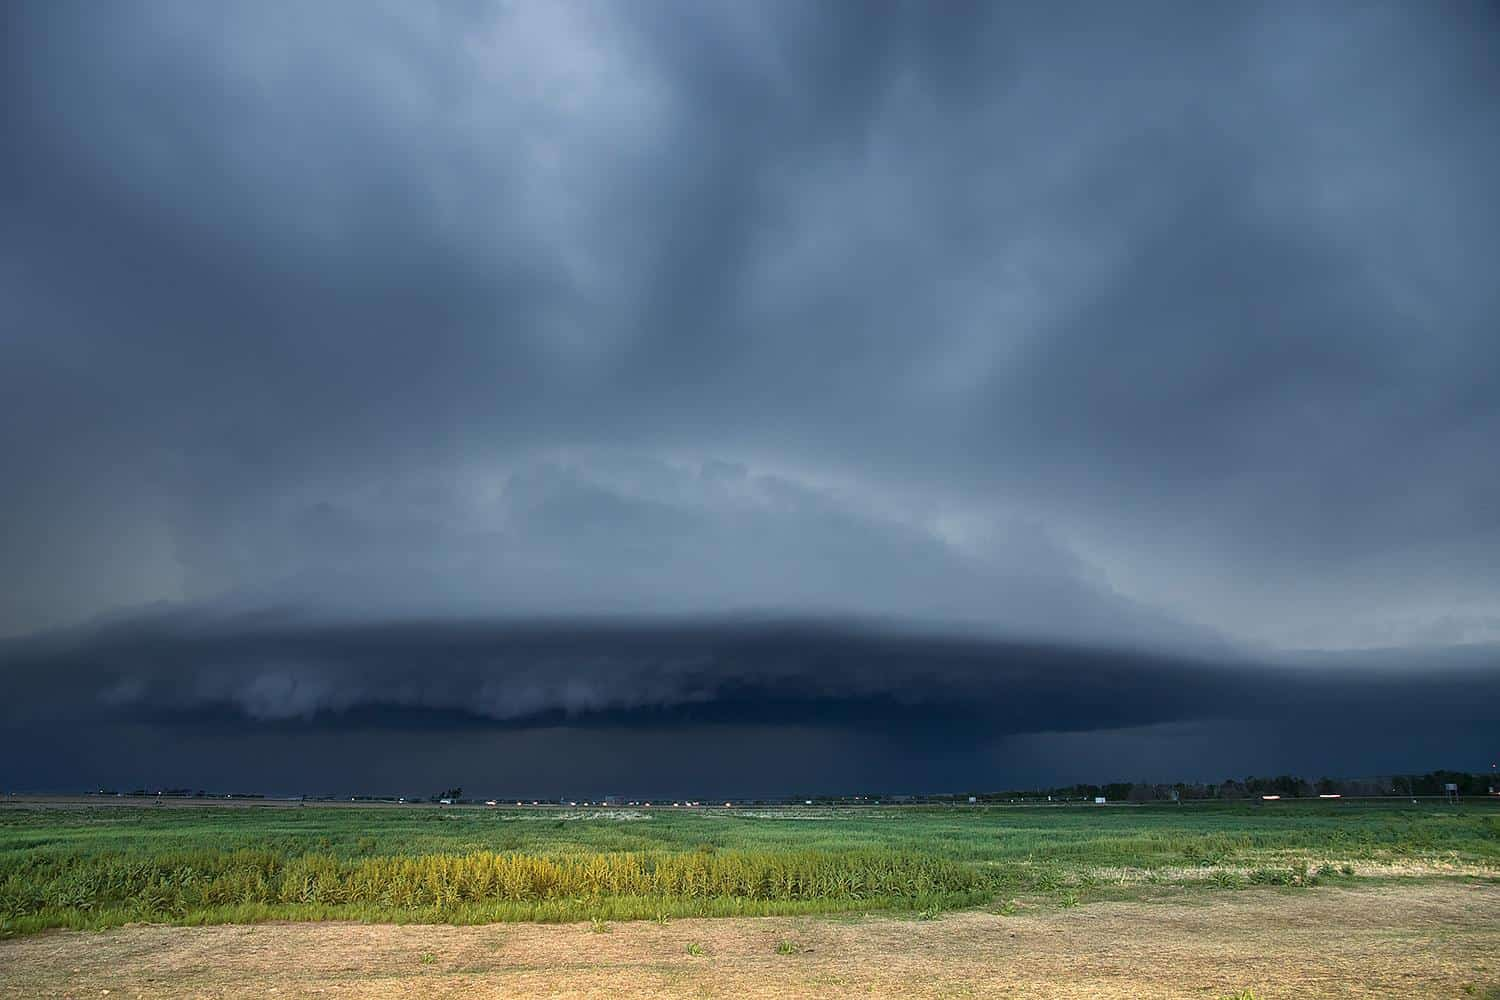 An HP supercell in Ogallala, NE on 5-15-15. It produced golfball-sized hail and ~80mph winds moments later.